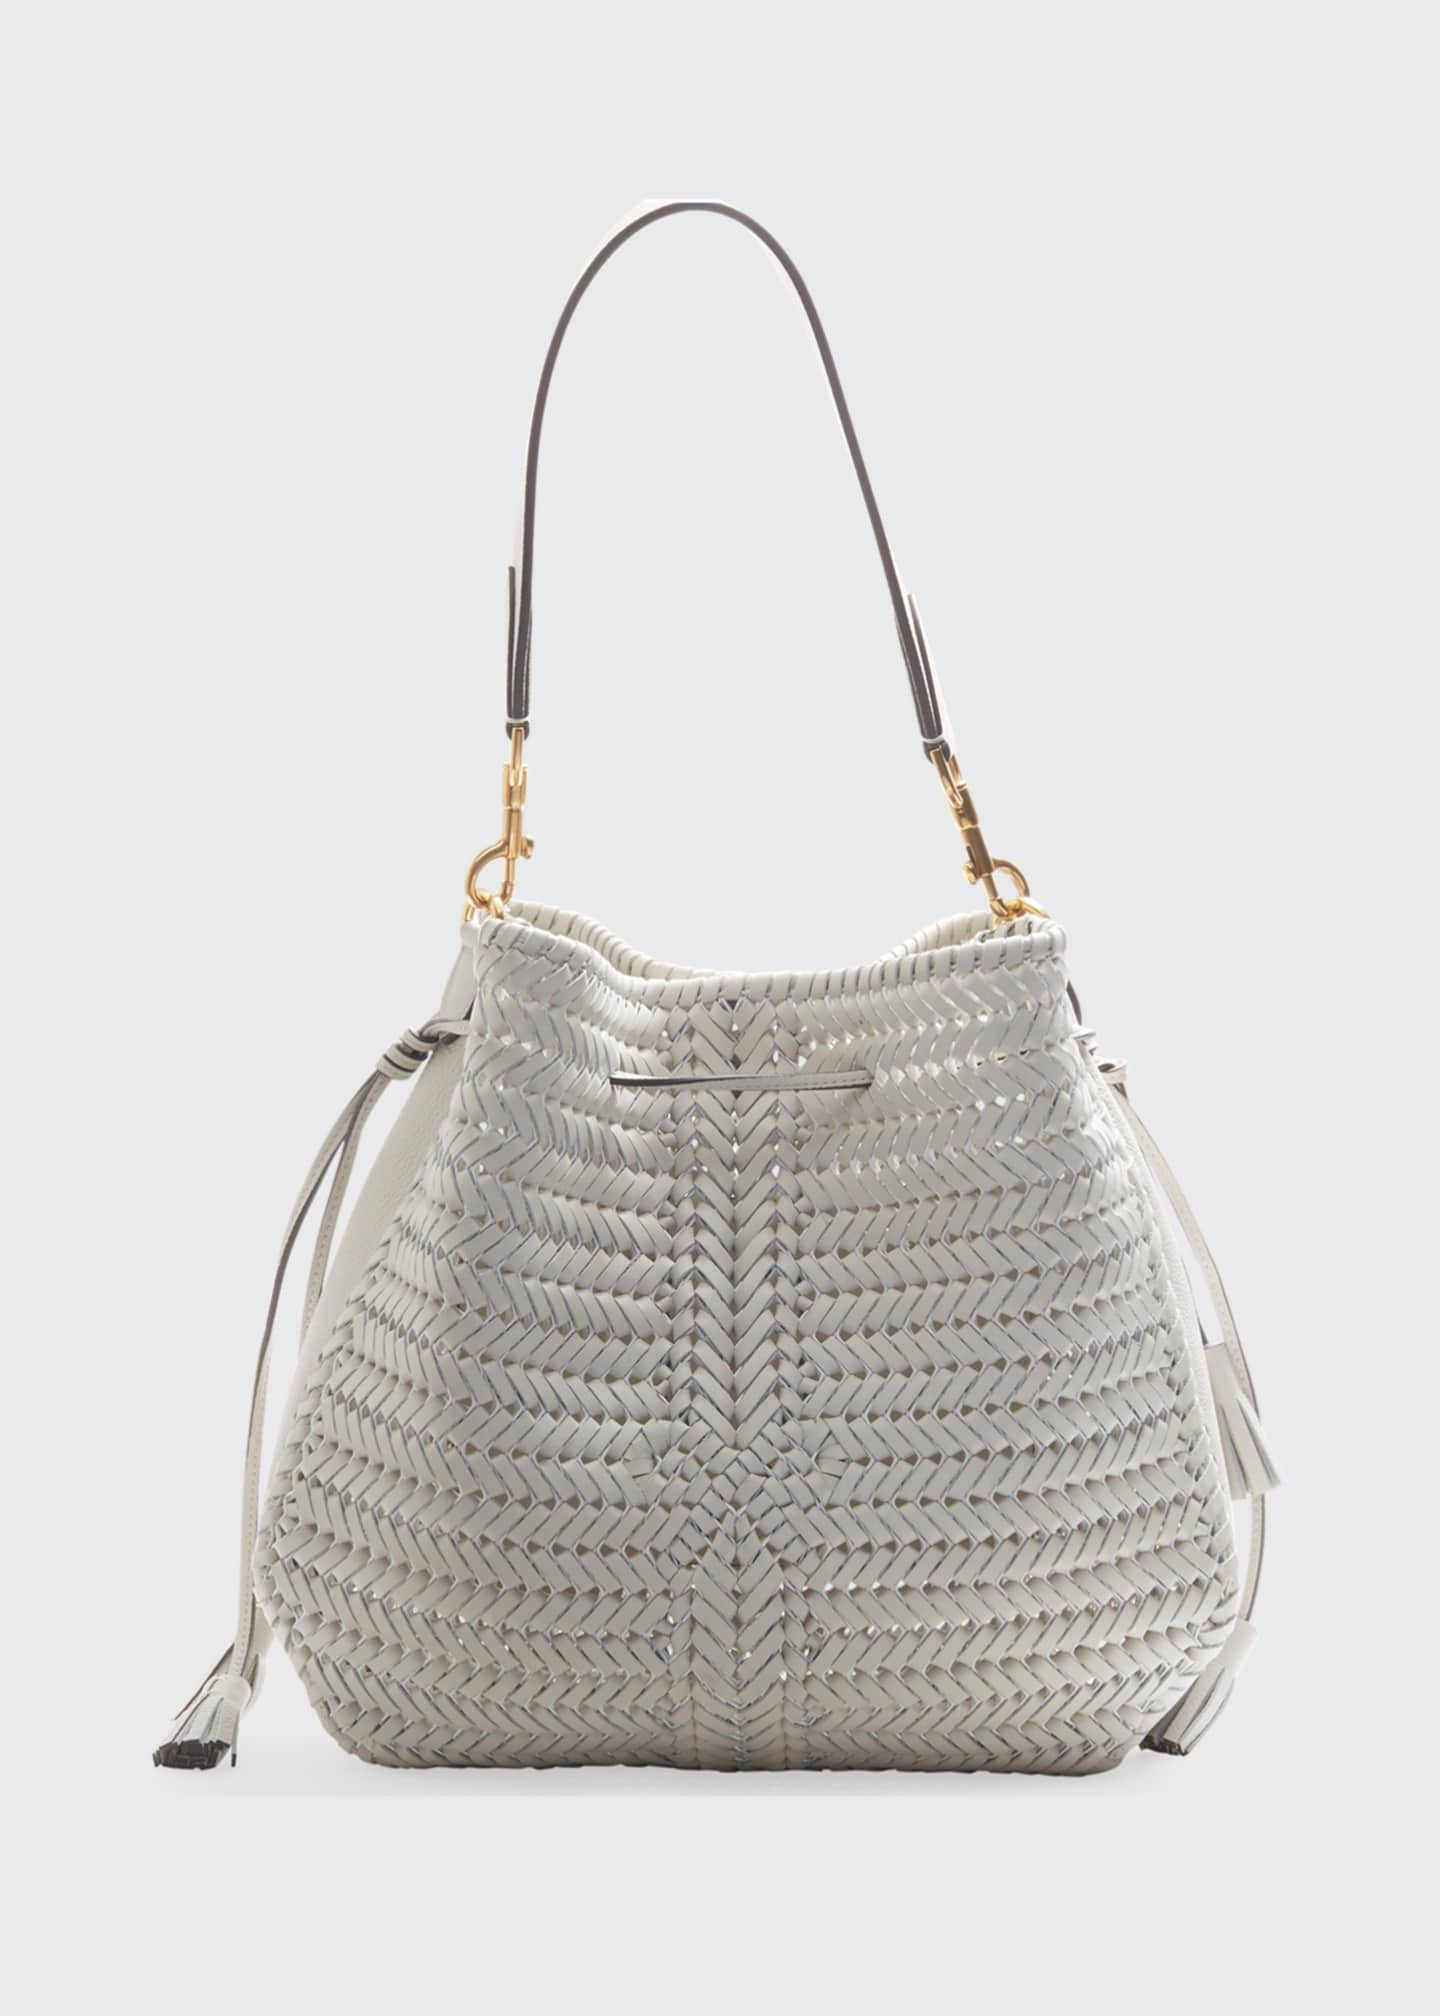 Anya Hindmarch The Neeson Braided Hobo Bag, White